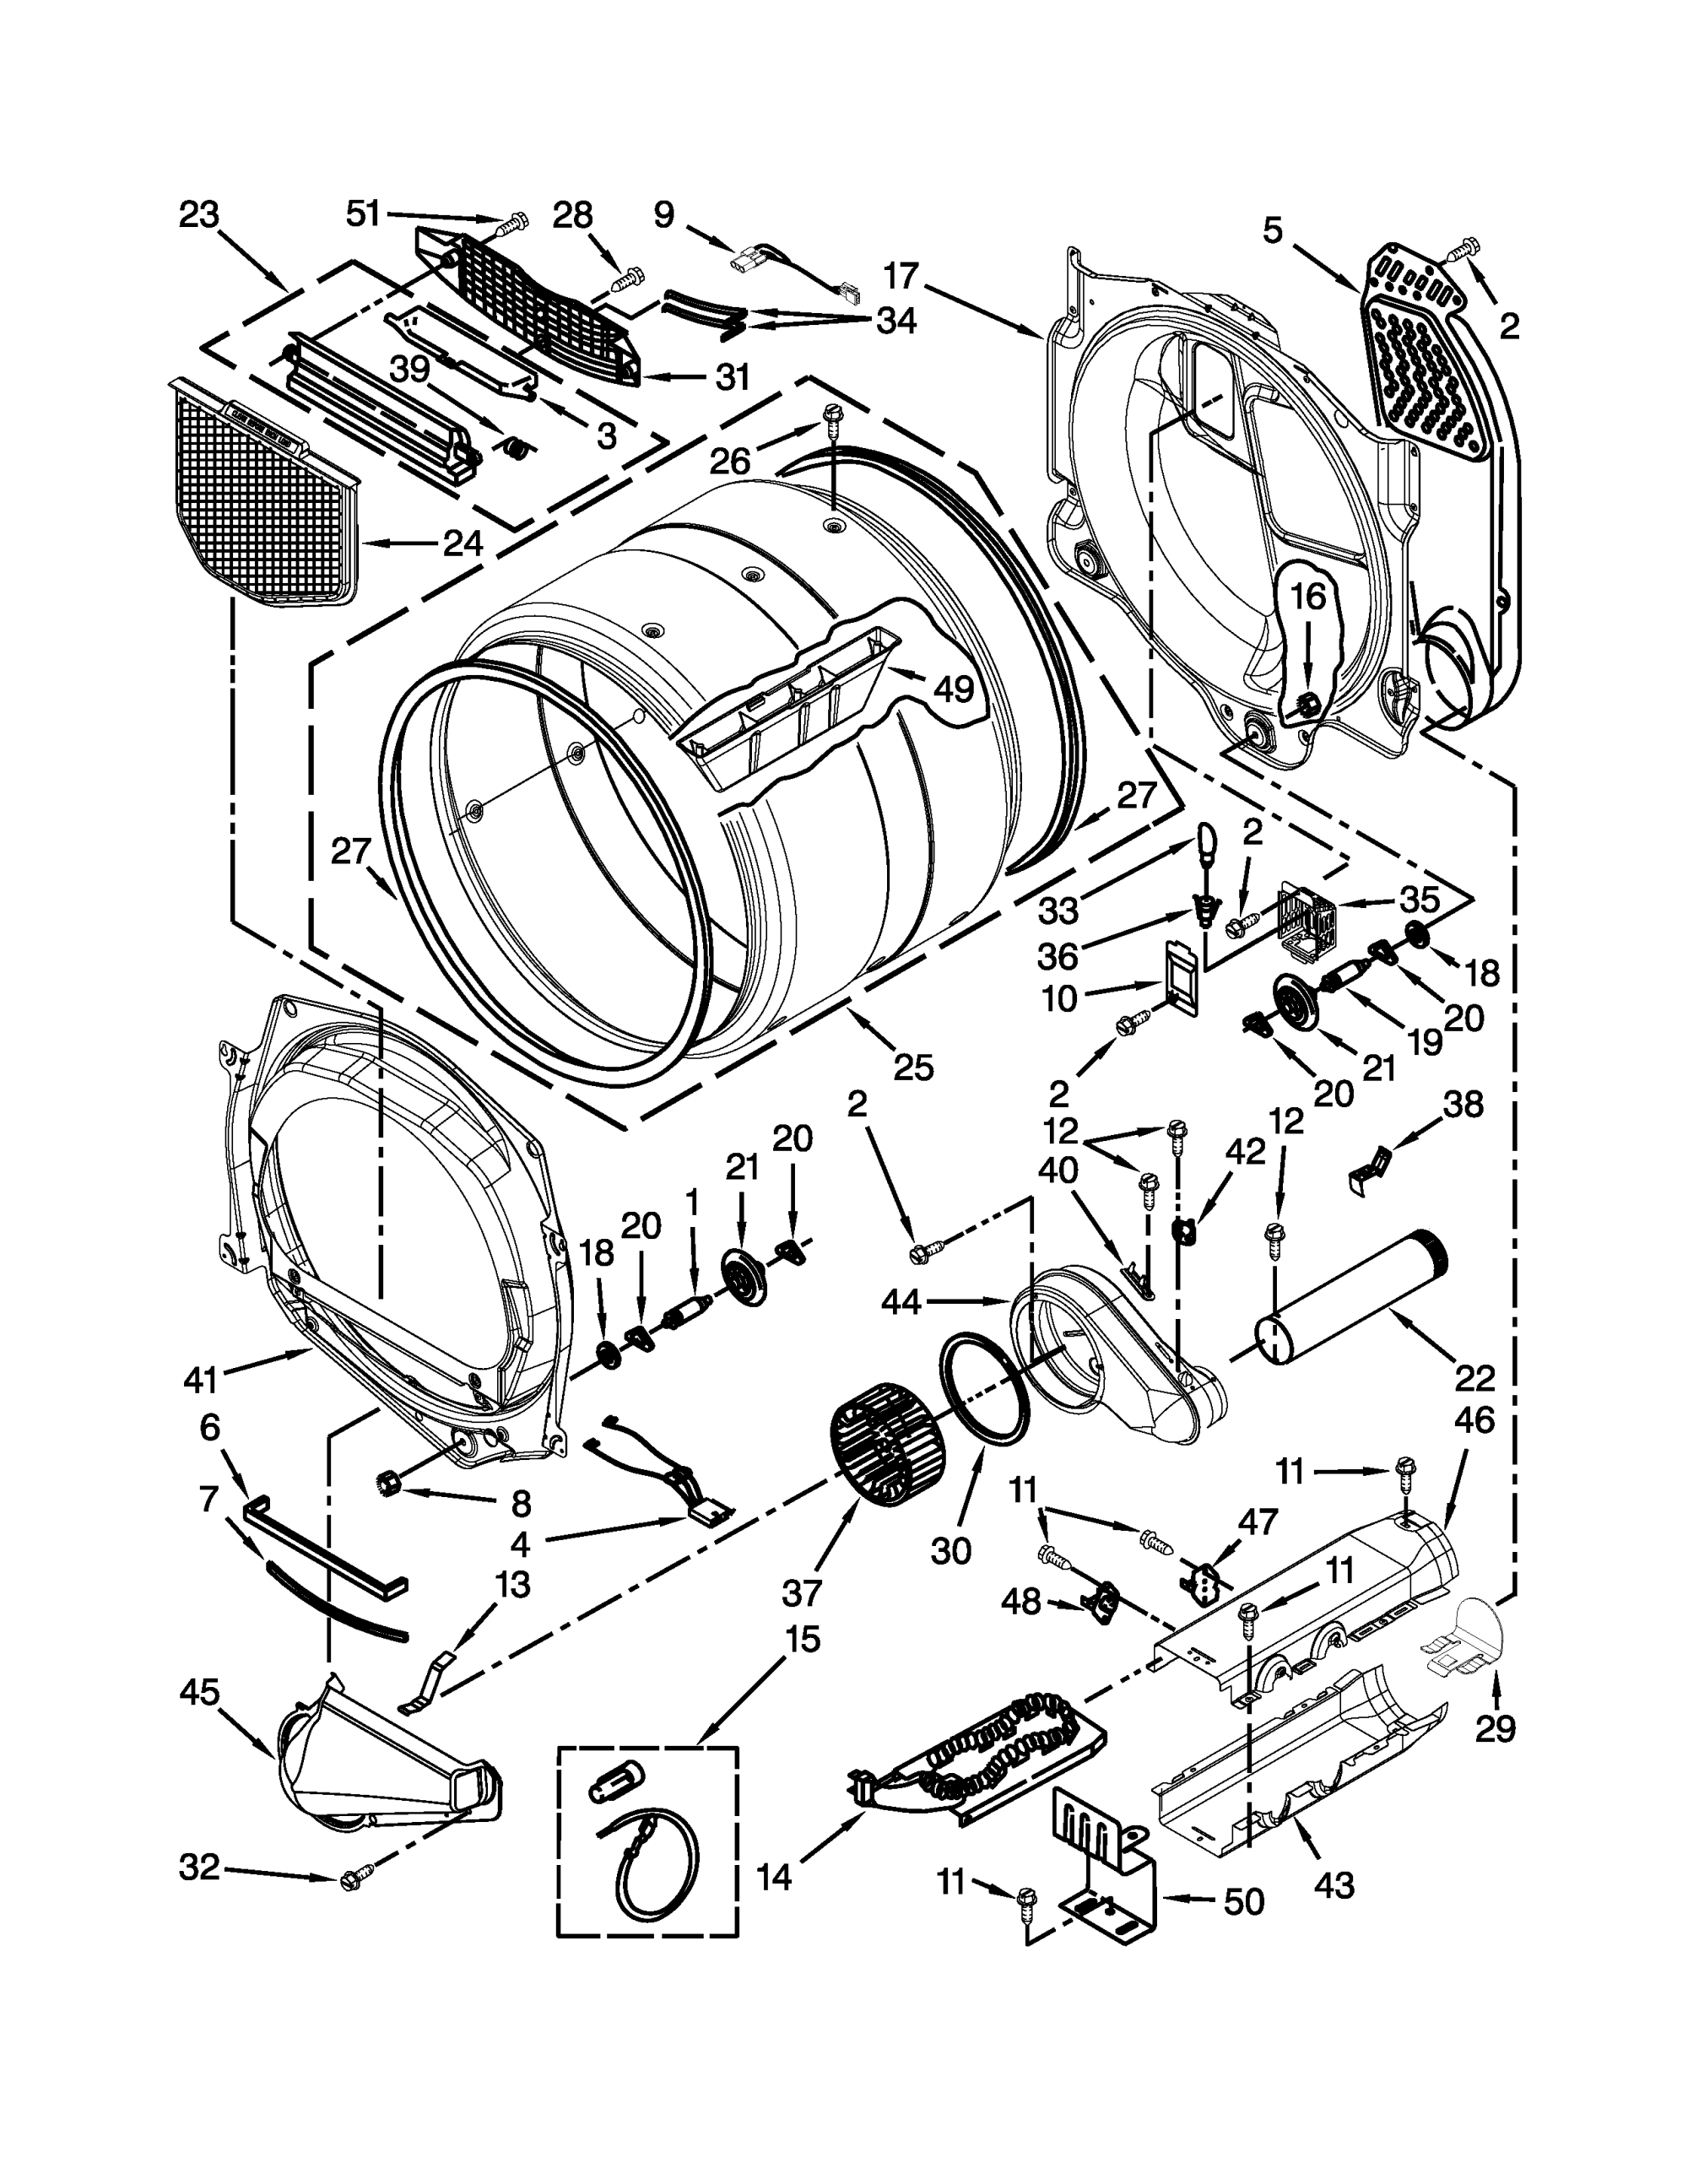 hight resolution of dryer schematic diagram